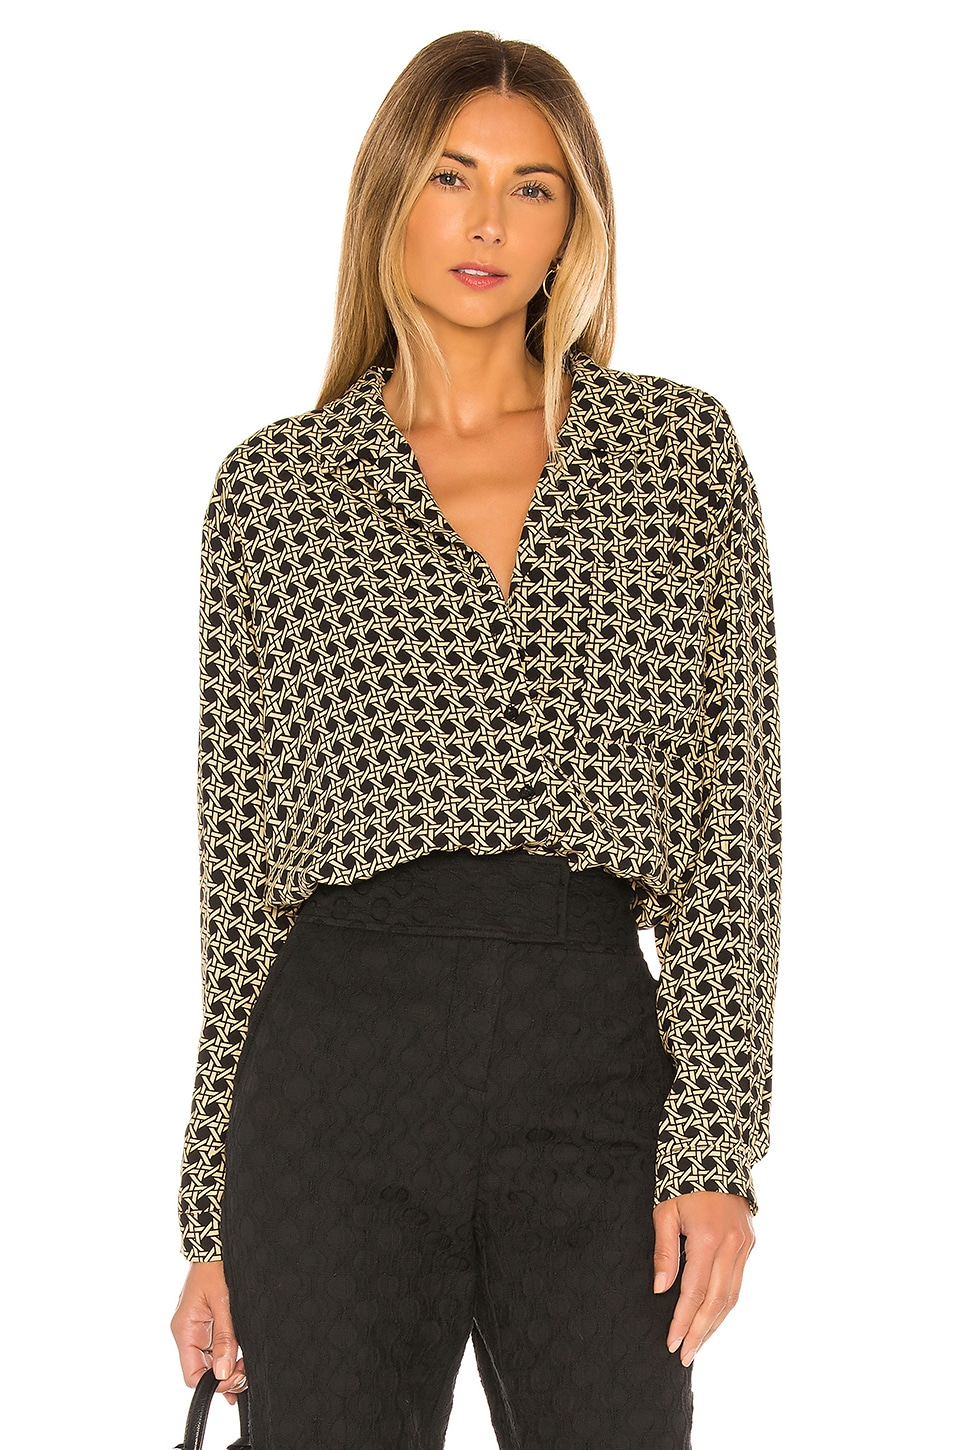 L'Academie The Lilou Top en Black Basket Weave